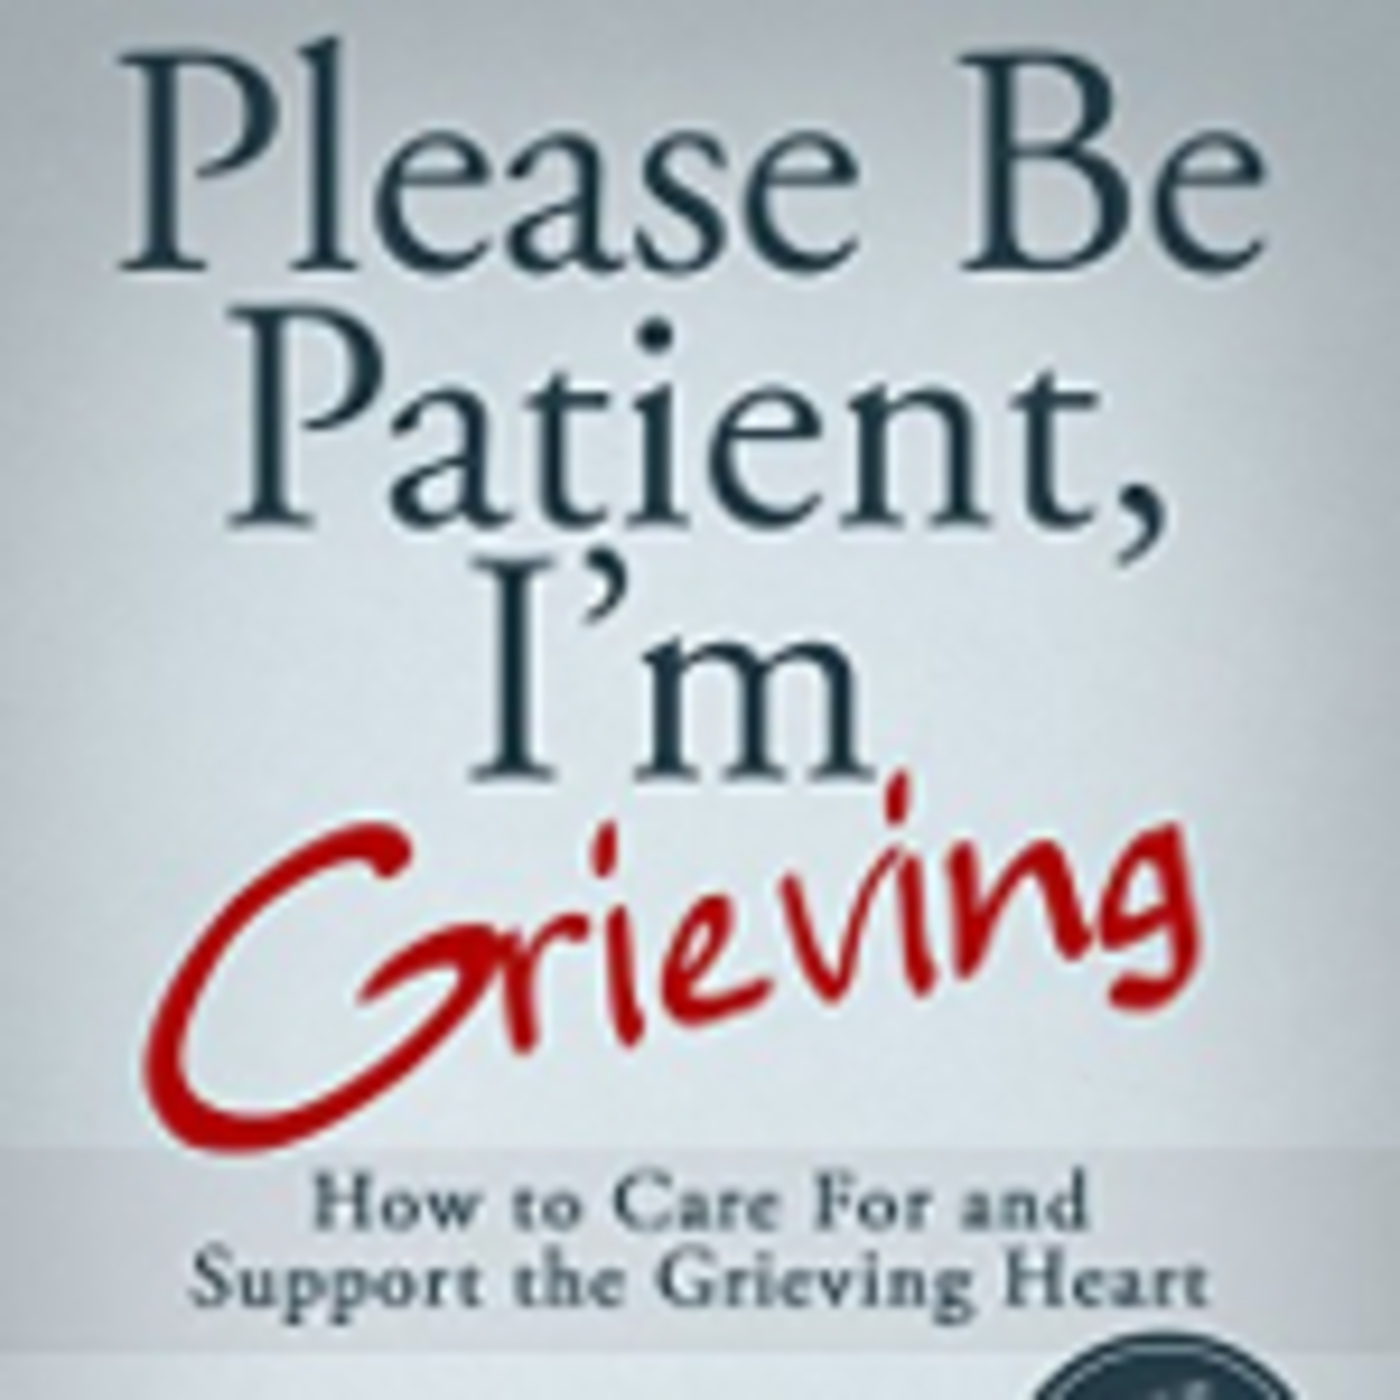 Please Be Patient, I'm Grieving, by author Gary Roe